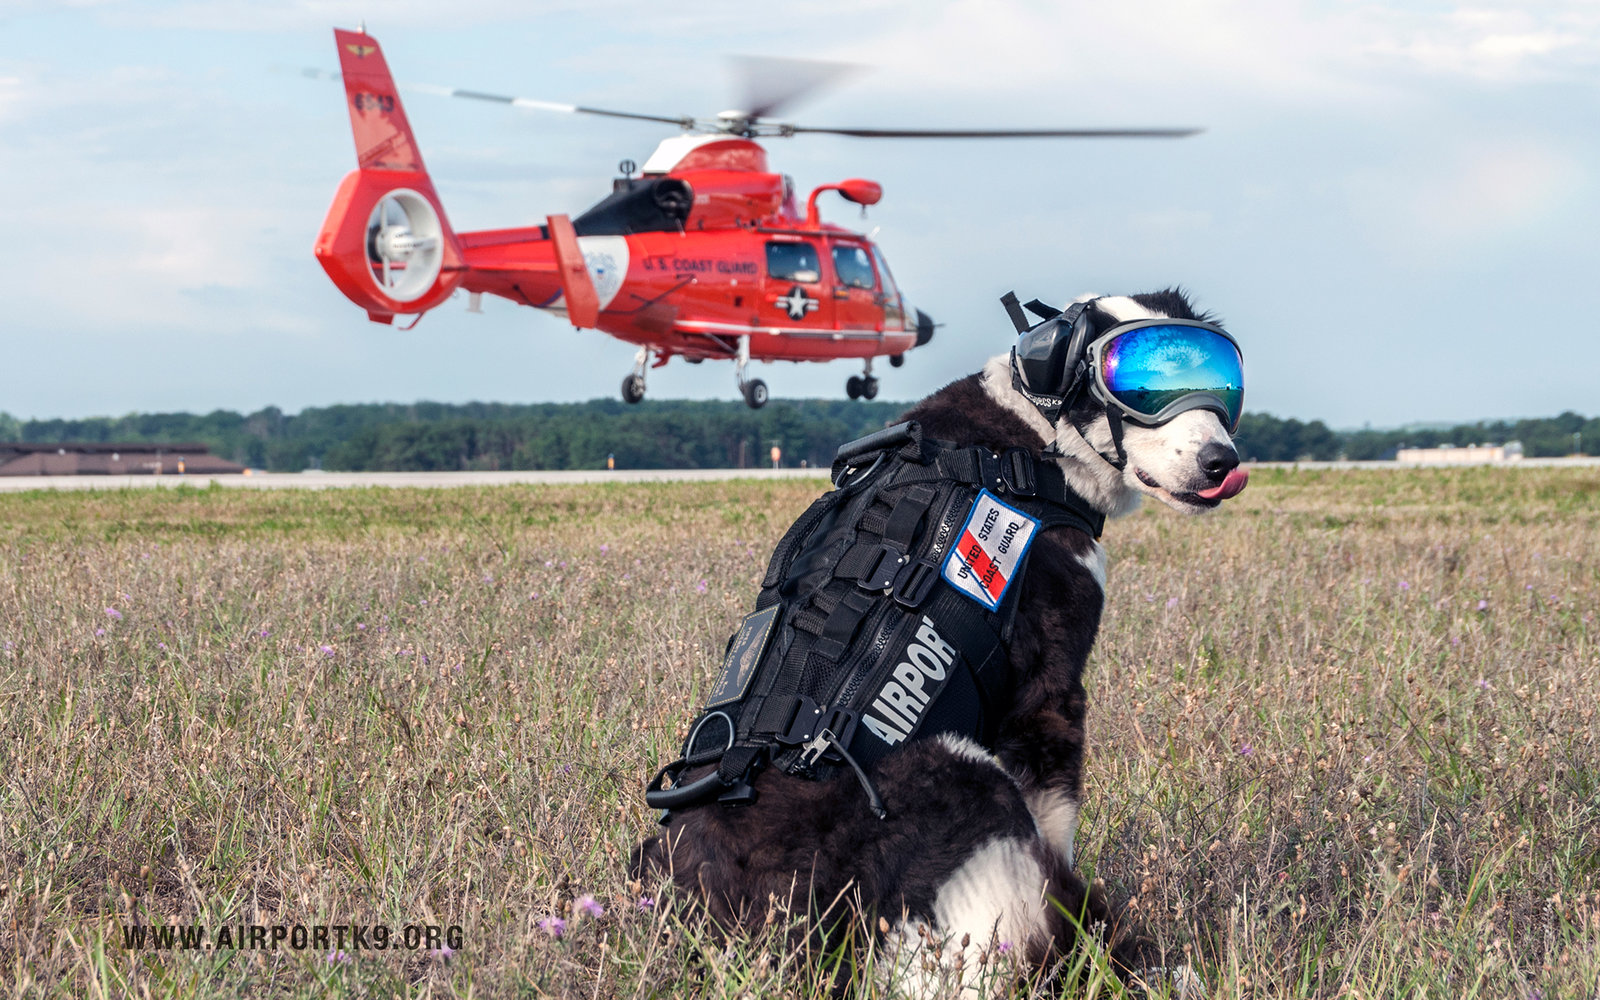 The World's Coolest Airport Employee is a Runway Patrol Dog Named Piper